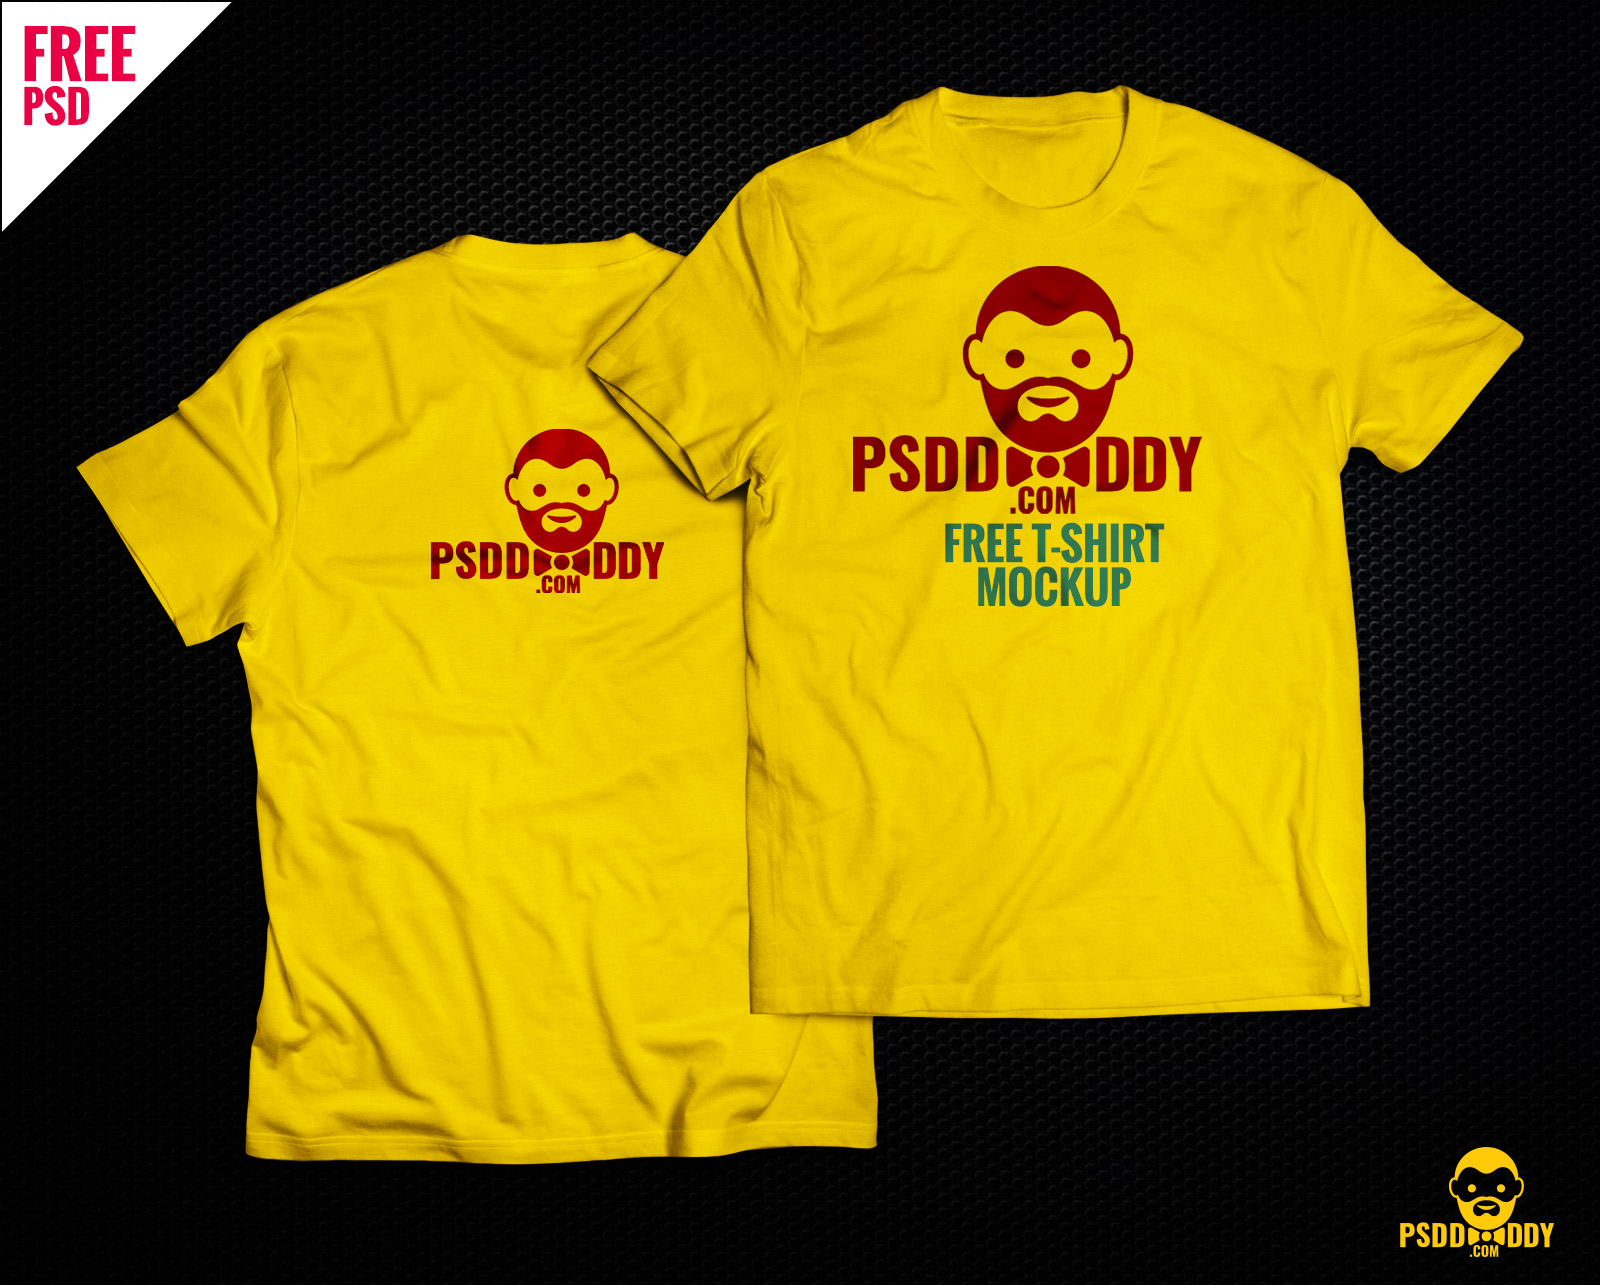 Download] T-Shirt Mock-up Free PSD | PsdDaddy.com